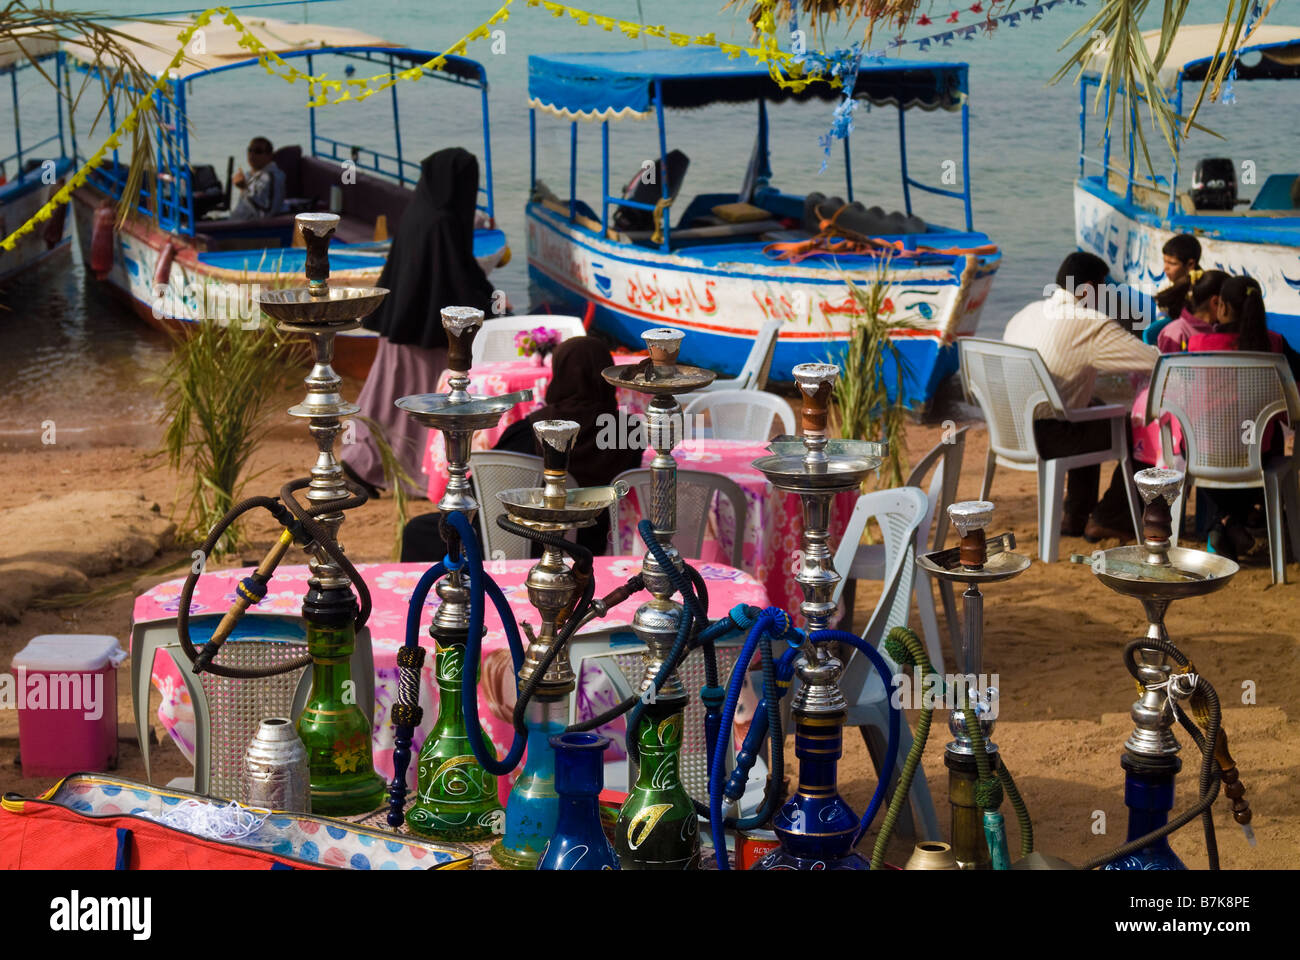 Water pipes at Aqaba beach JORDAN - Stock Image